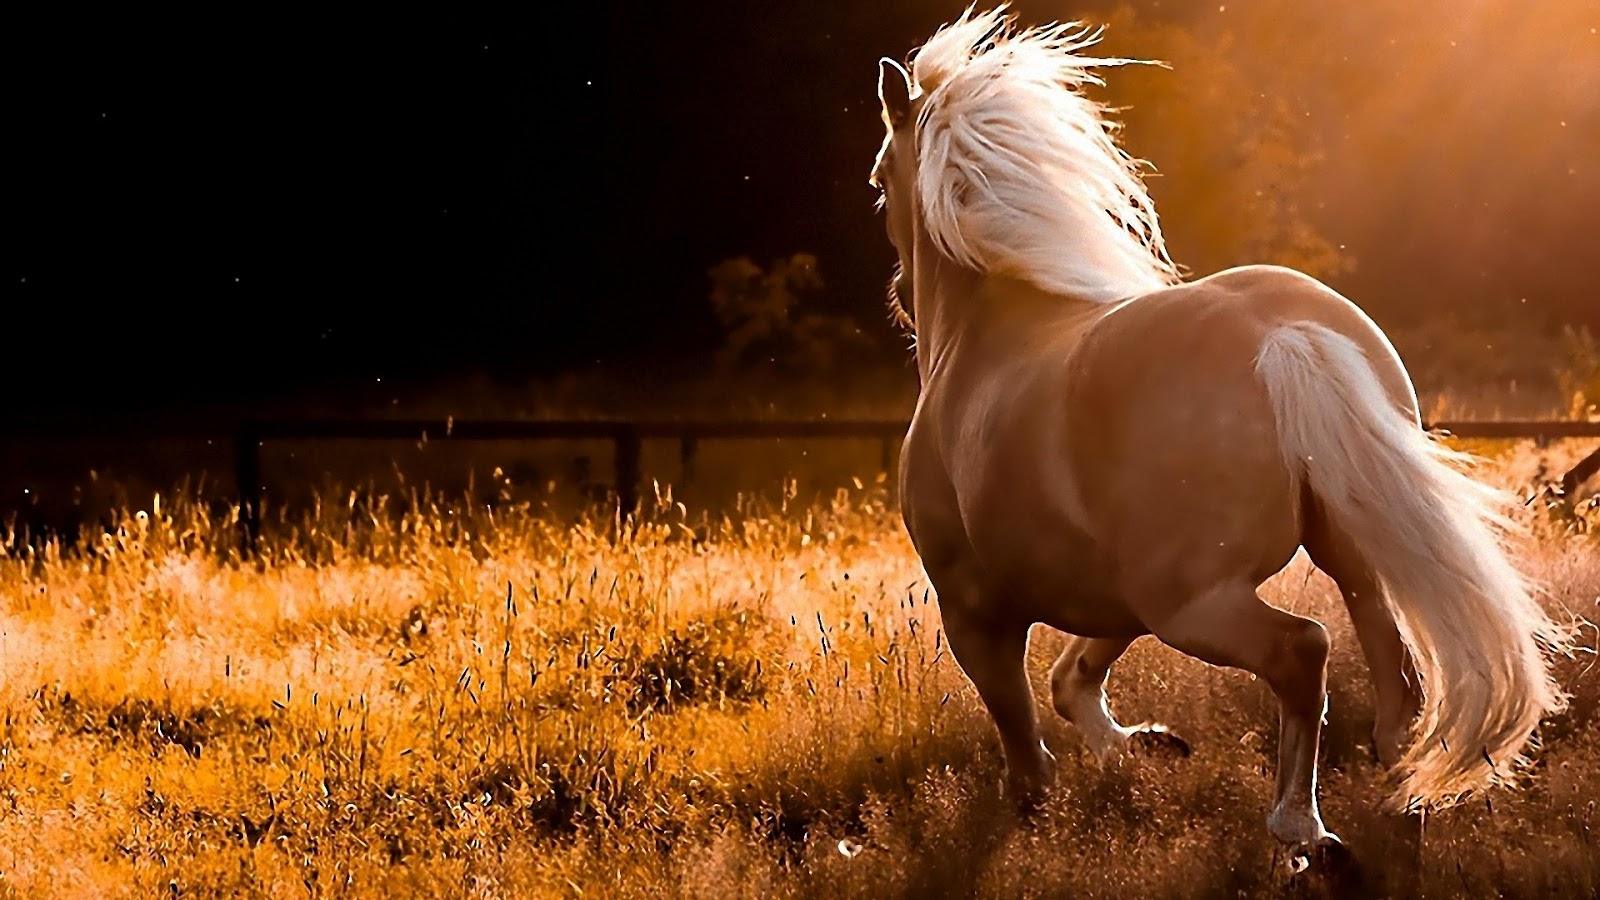 Beautiful horse hd wallpapers 2013